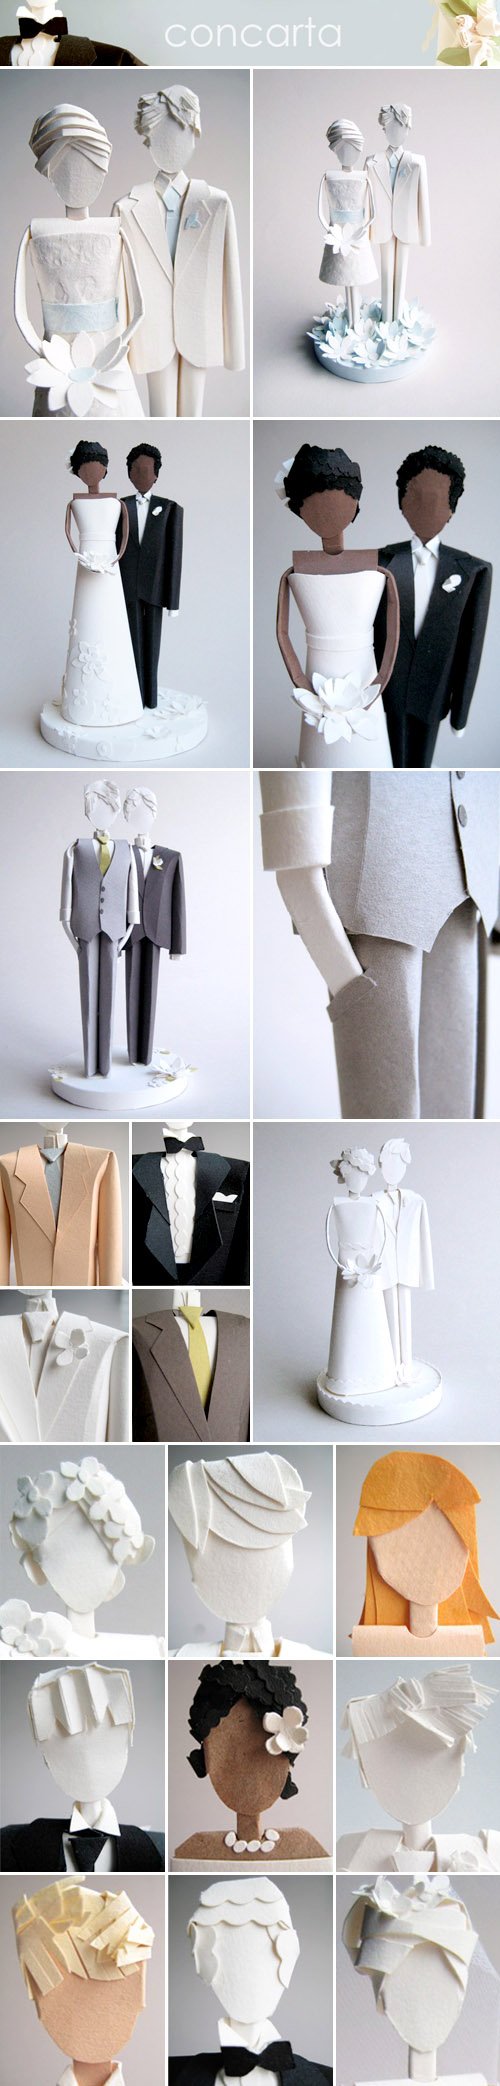 creative paper wedding cake toppers from concarta on etsy.com